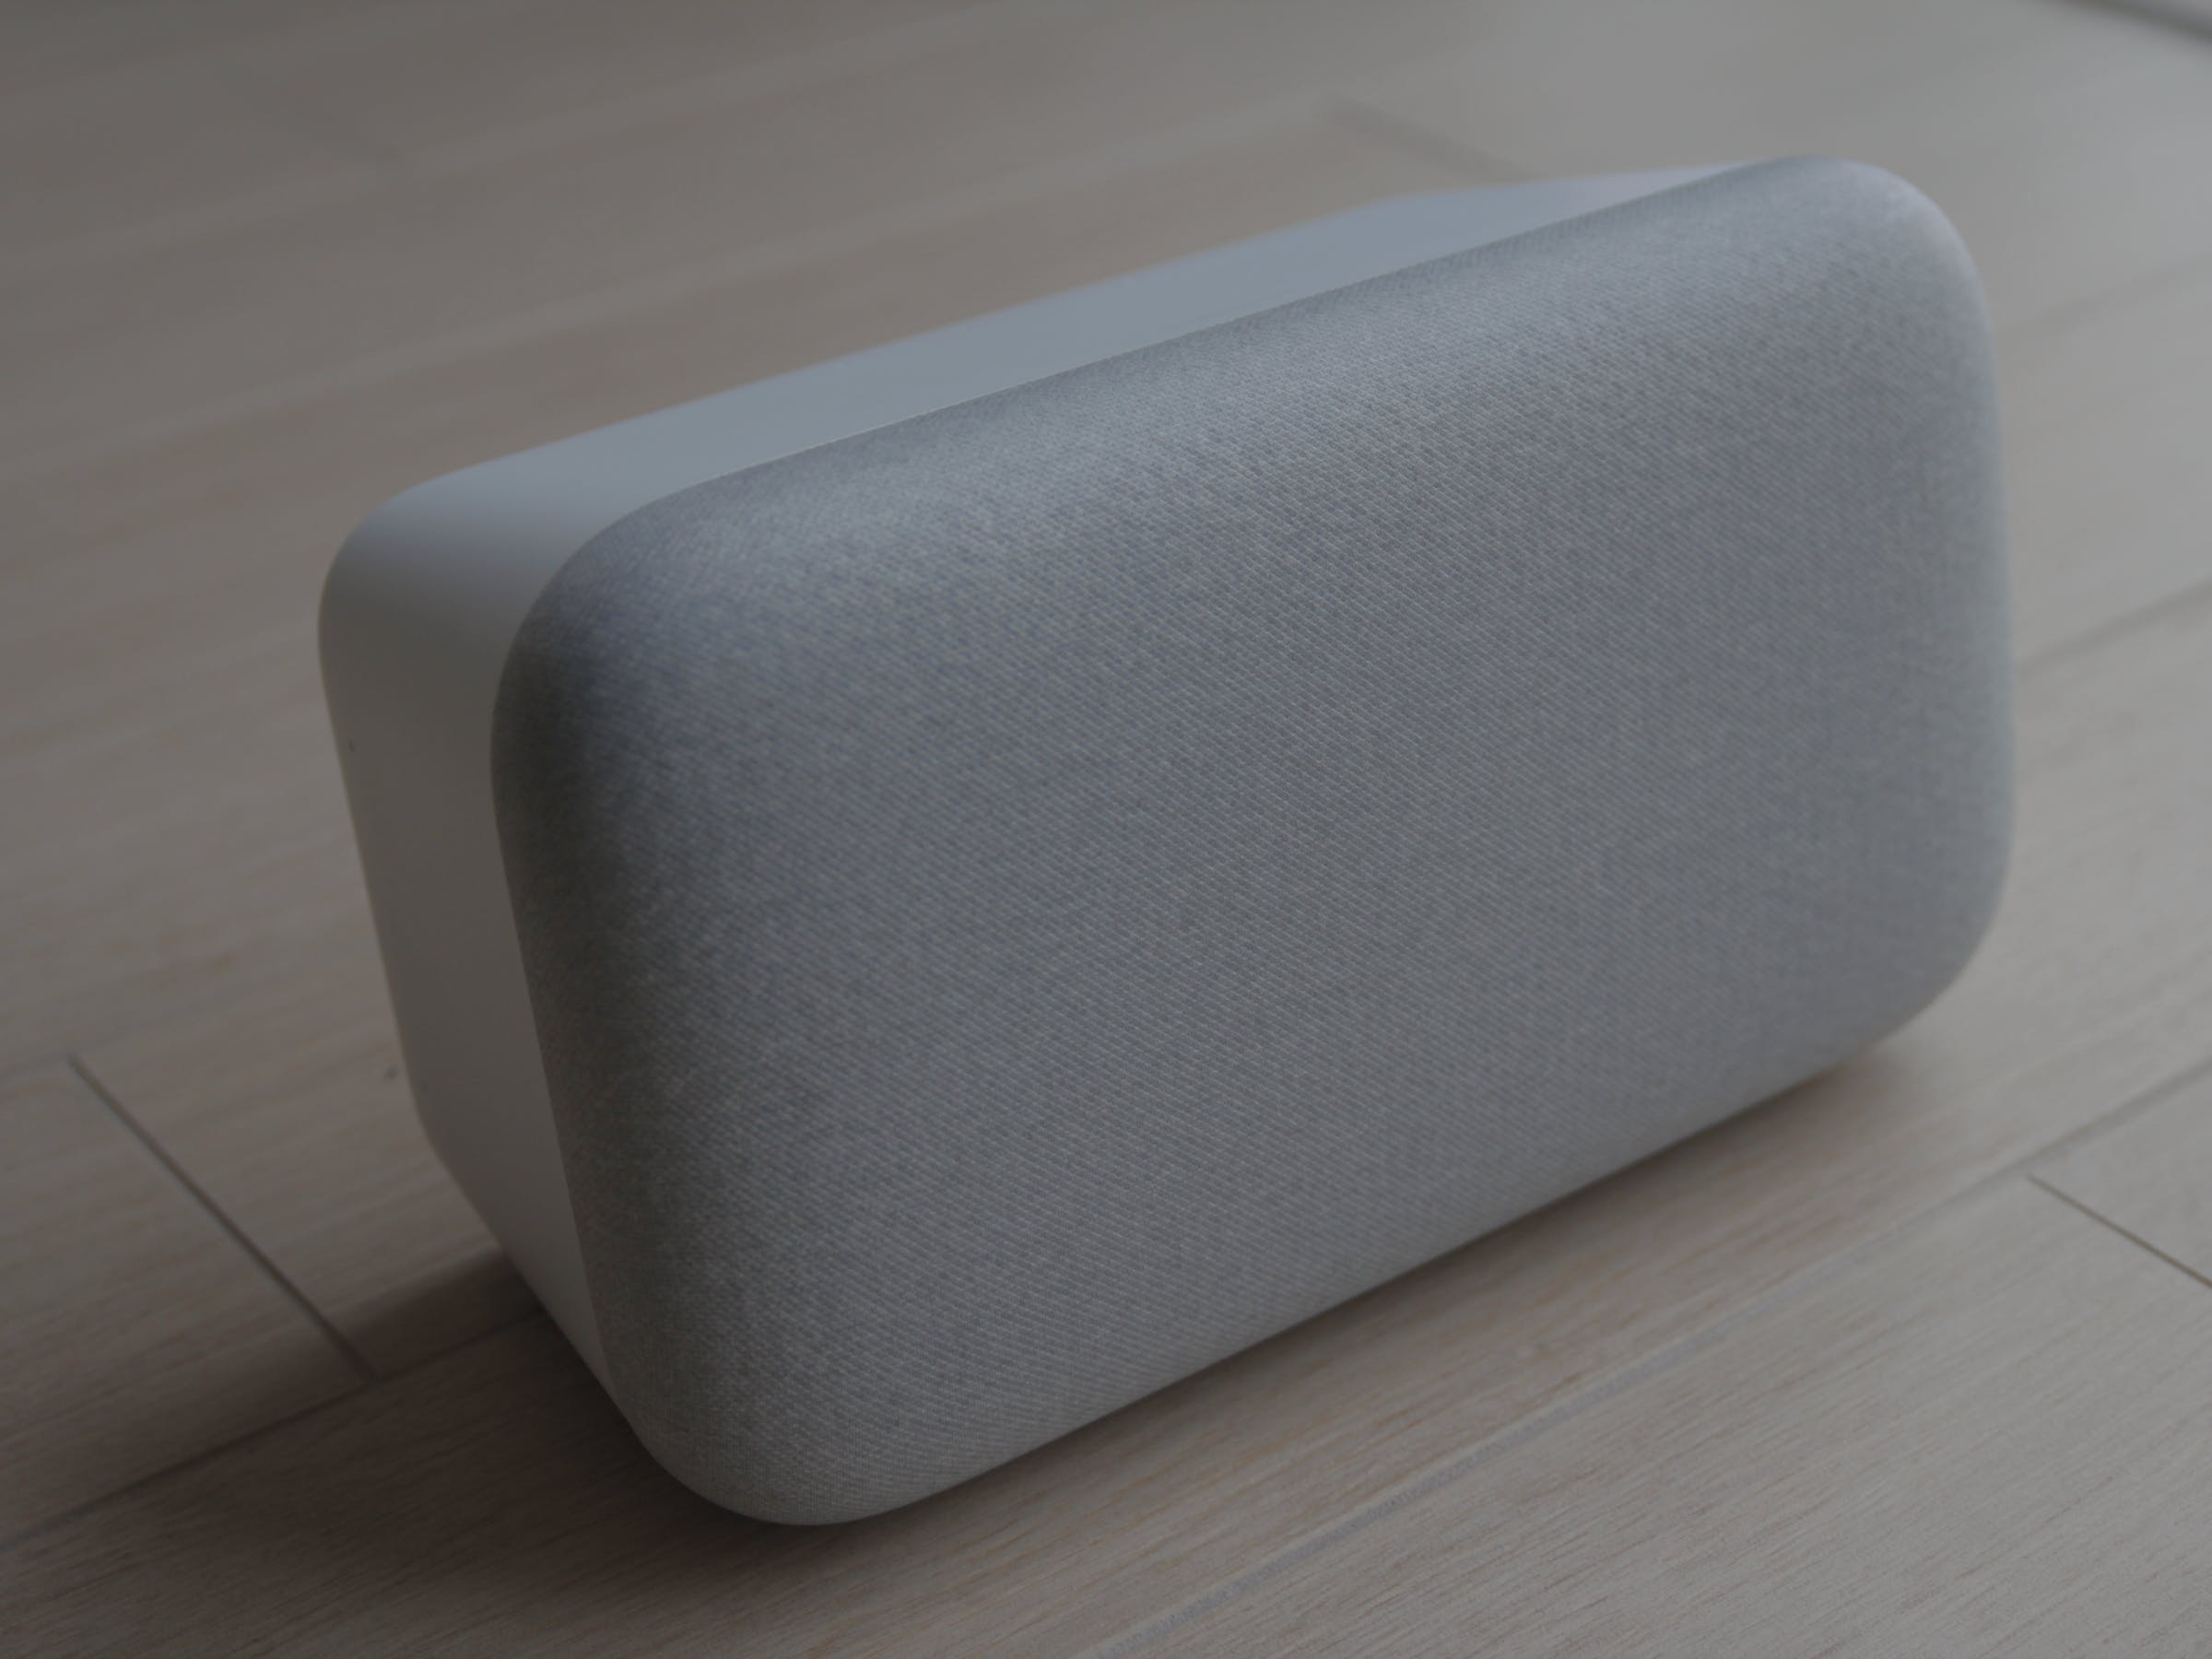 Google Home Max: After Using It for a Week, I Can Hear the